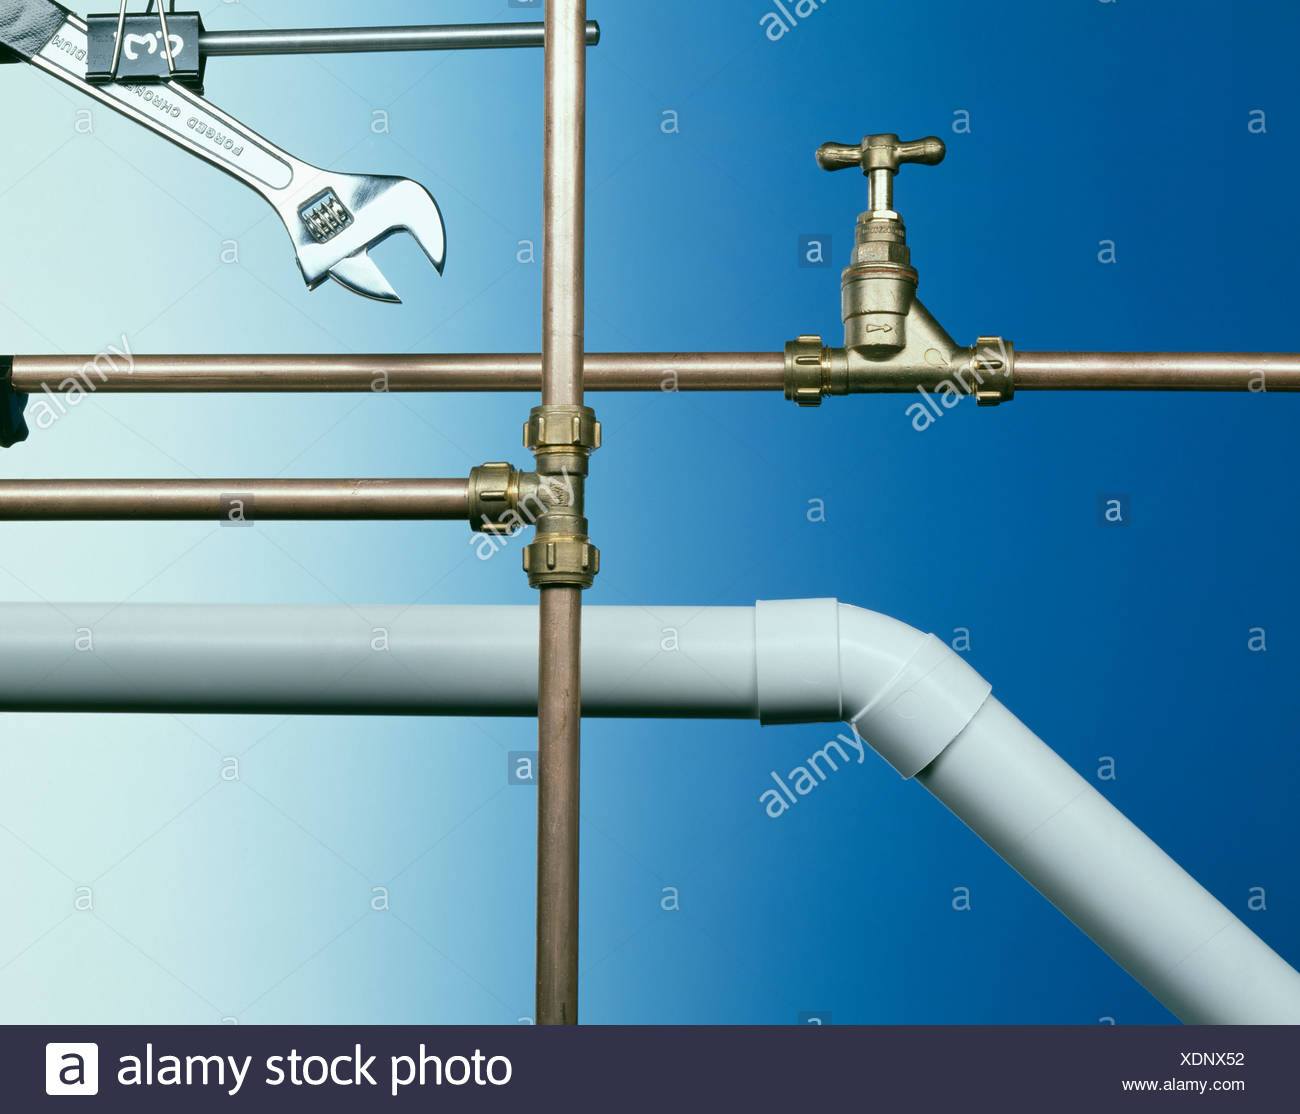 Close Up Of Copper Tap And Plumbing Pipes With Wrench And White